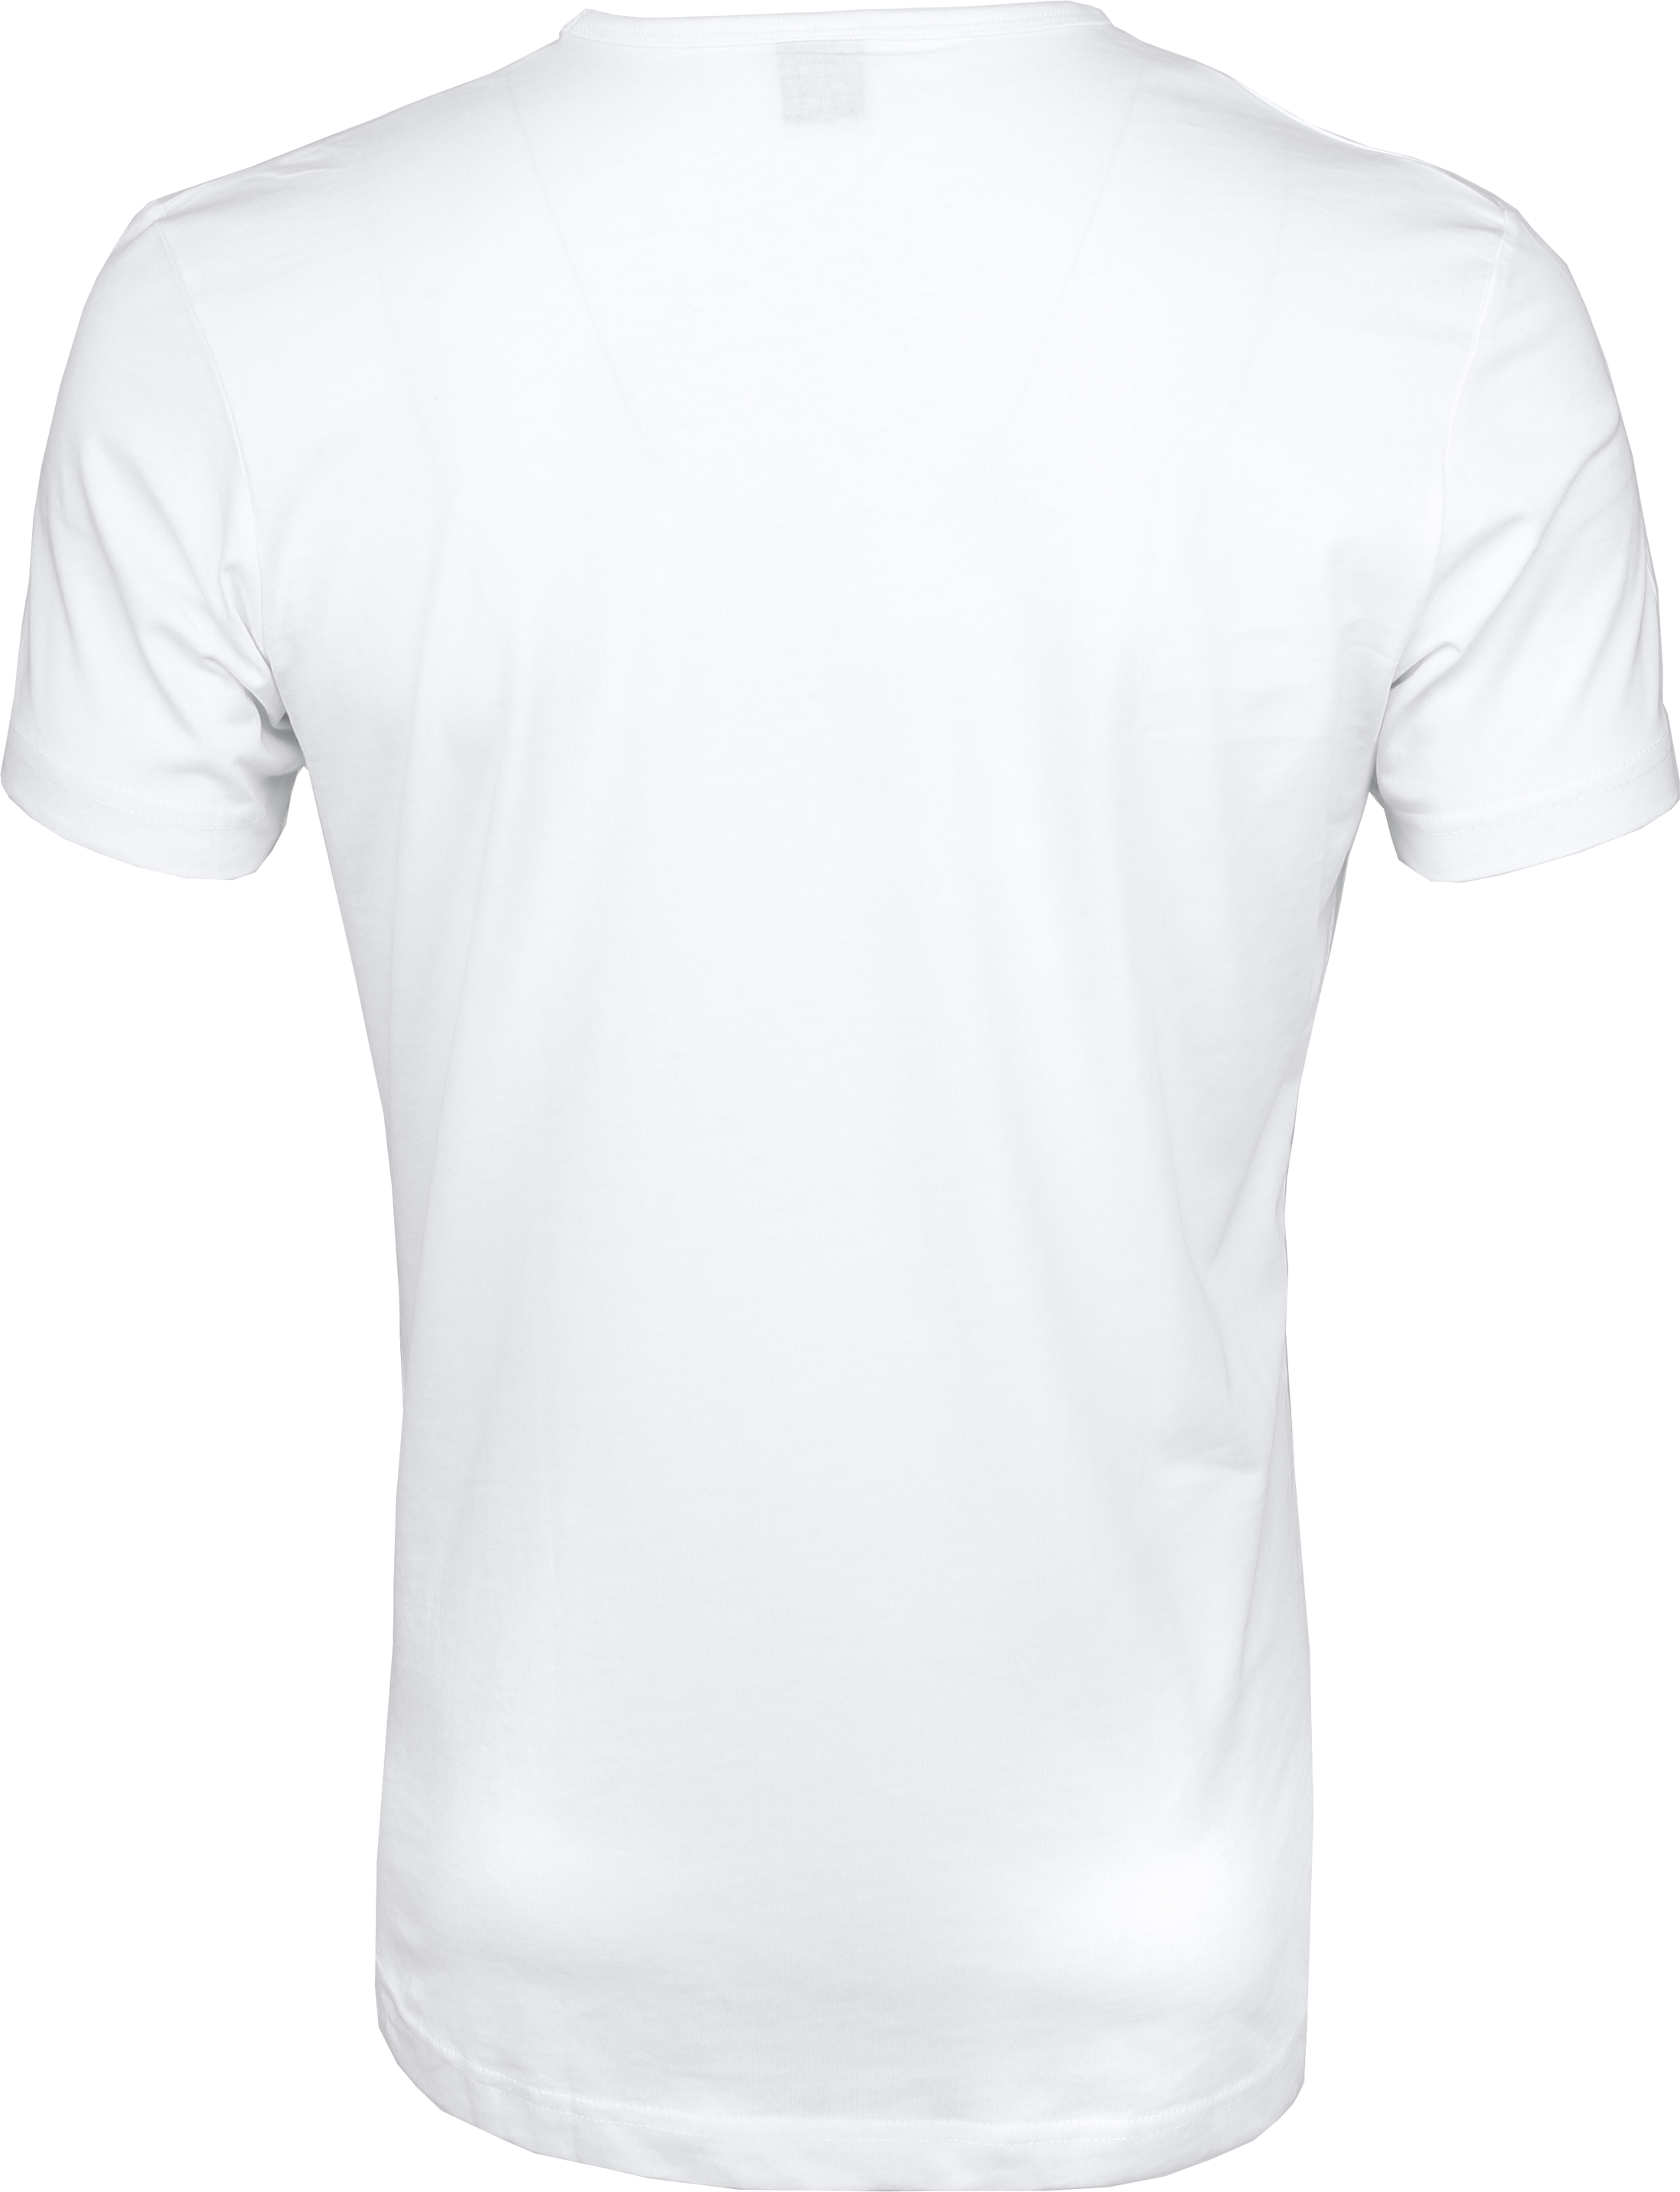 Suitable T-shirt 2-Pack O-Hals Weiß foto 4